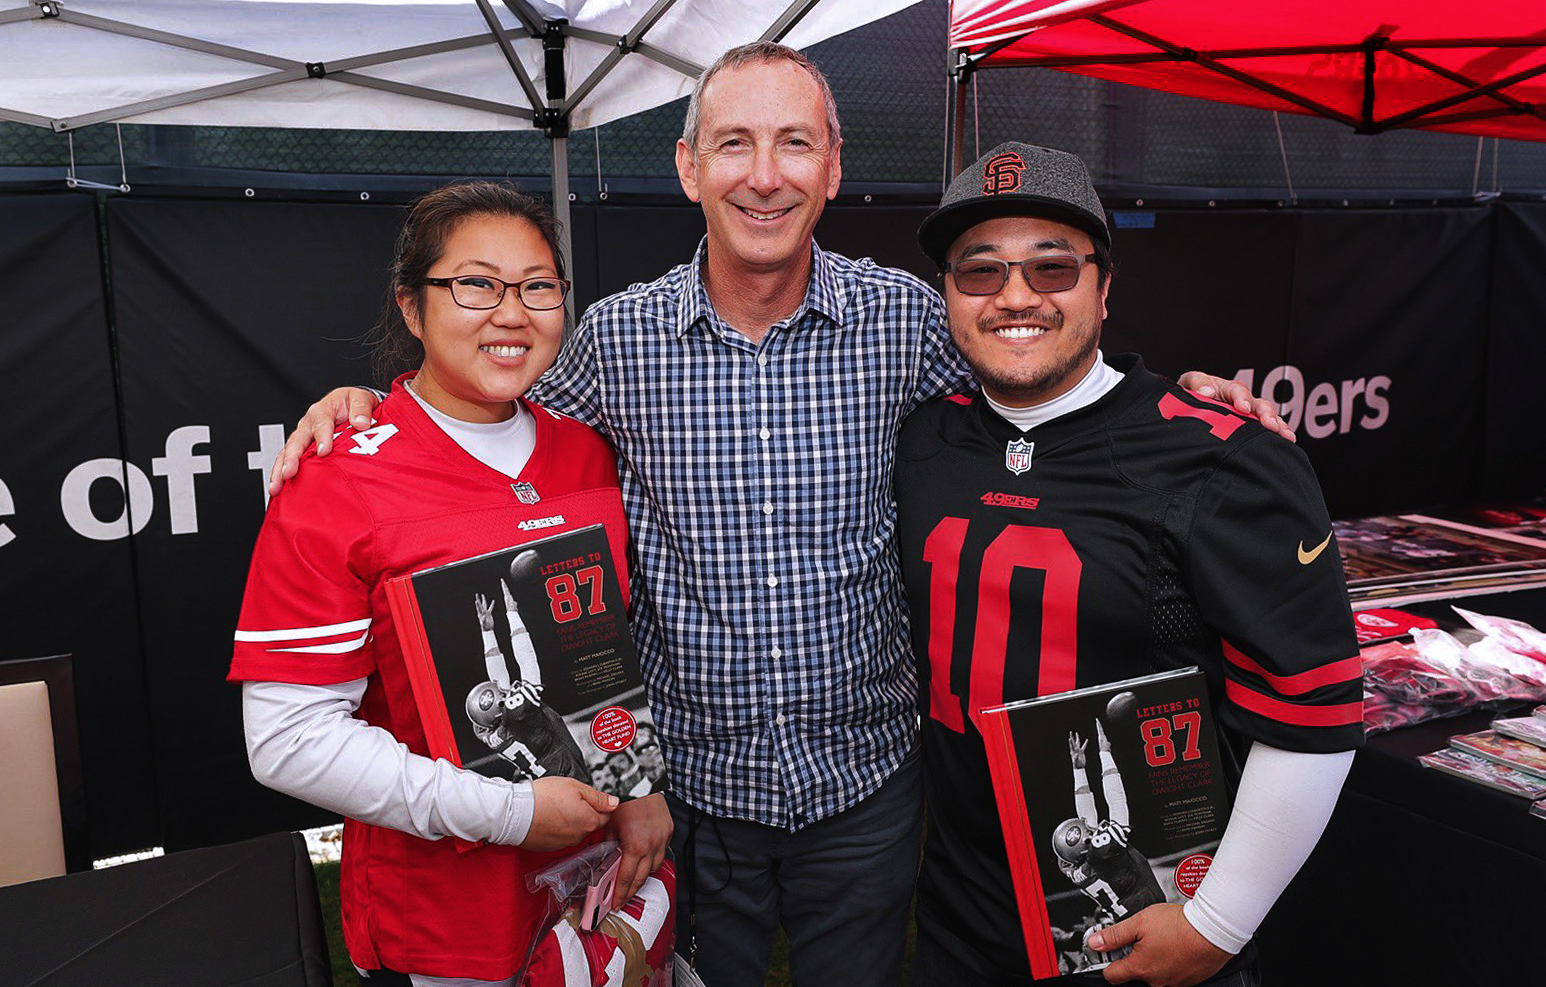 @49ers - Faithful had the opportunity to get their books signed by @MaioccoNBCS